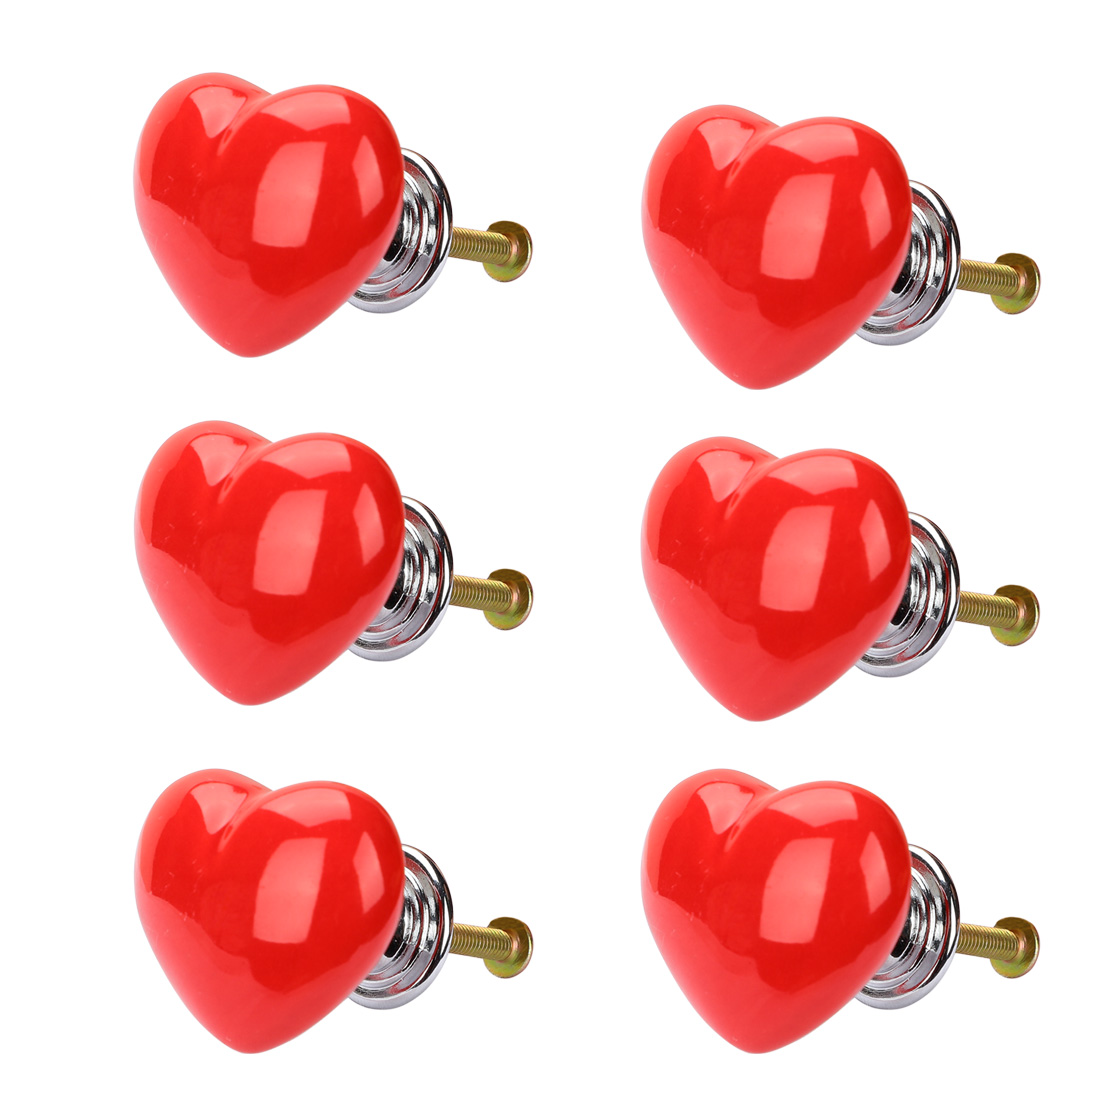 Solid Ceramic Knob Heart Shaped Drawer Pull Handle Cupboard Wardrobe 6pcs Red